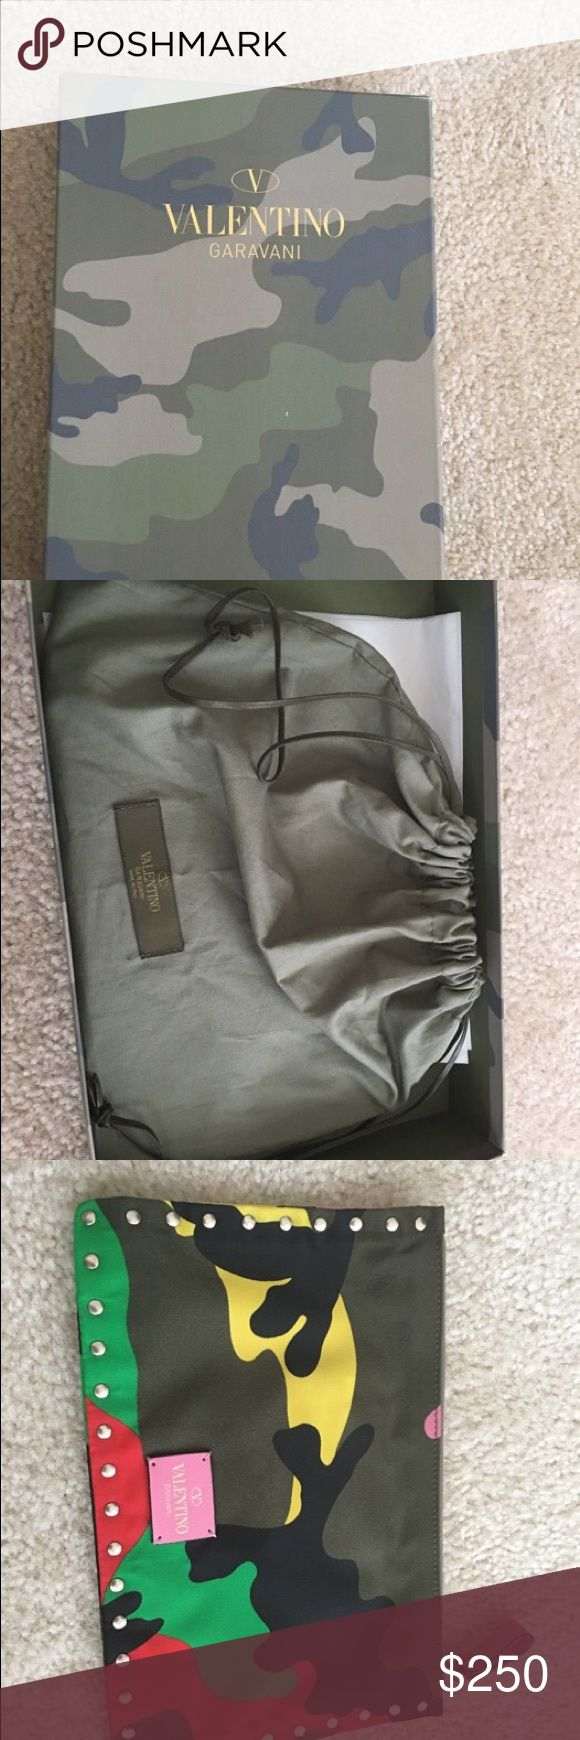 Valentino Clutch Valentino Clutch. Brand new, never used! Please let me know if you have any questions. 702-366-5663 Valentino Garavani Bags Clutches & Wristlets